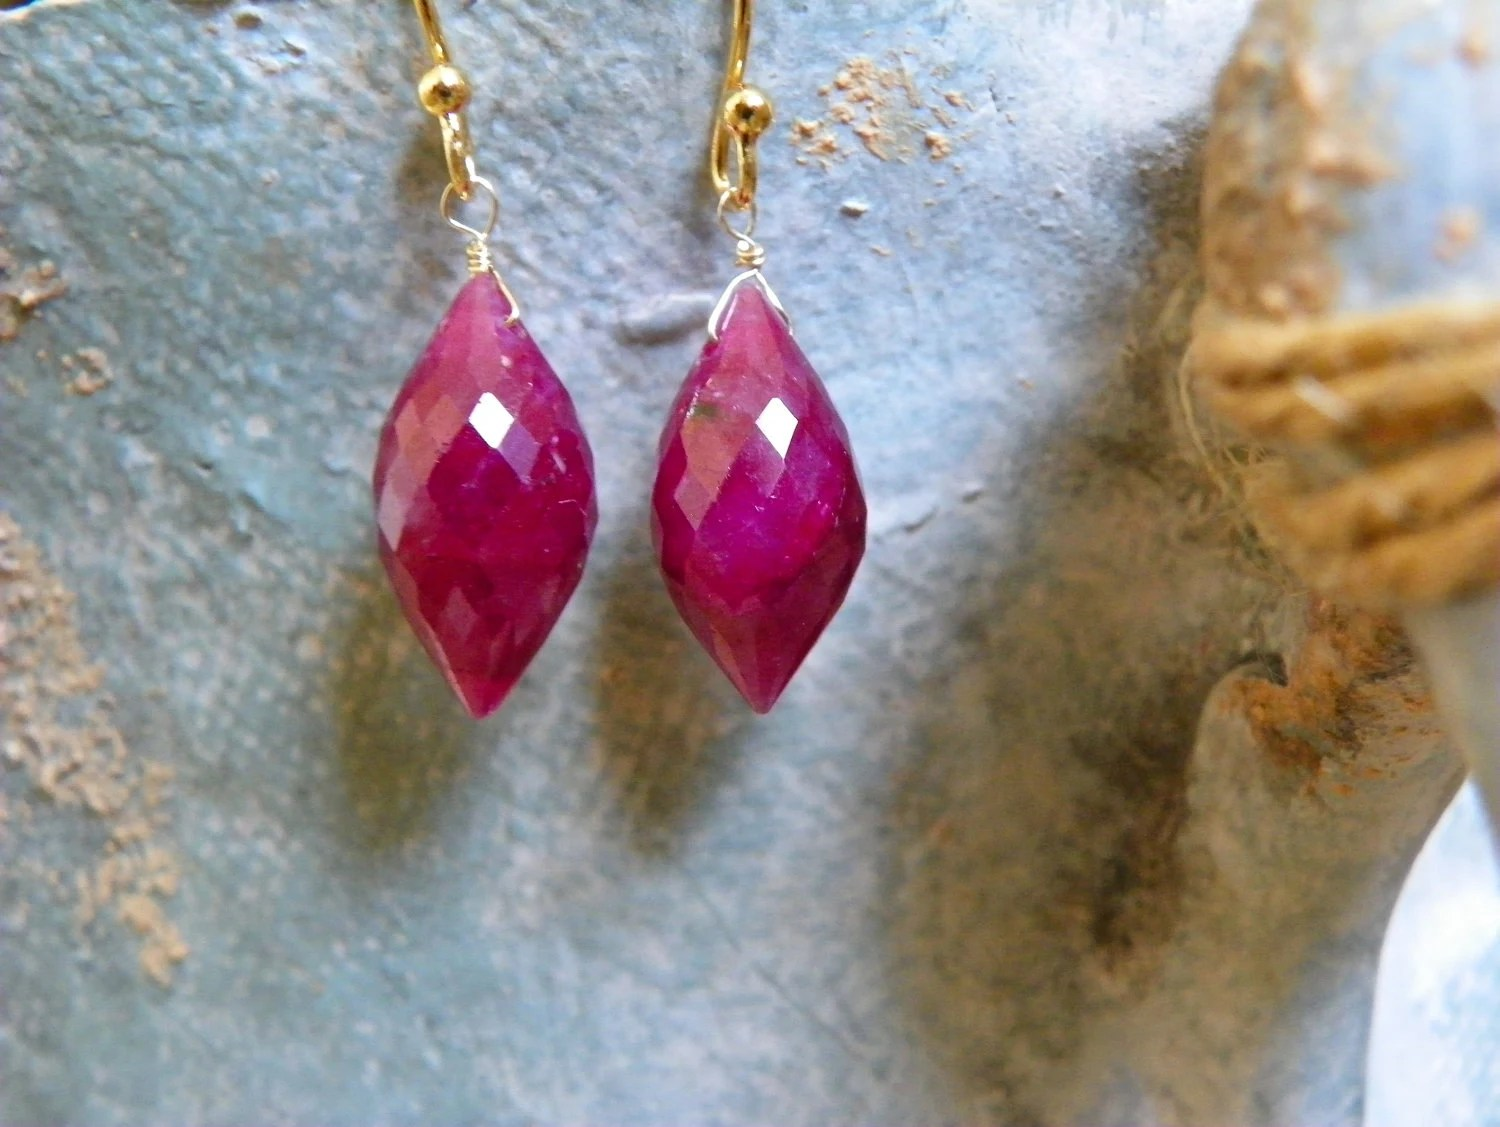 Delicate Ruby Earrings with Gold. Free shipping. Mother's Day Gift Idea.